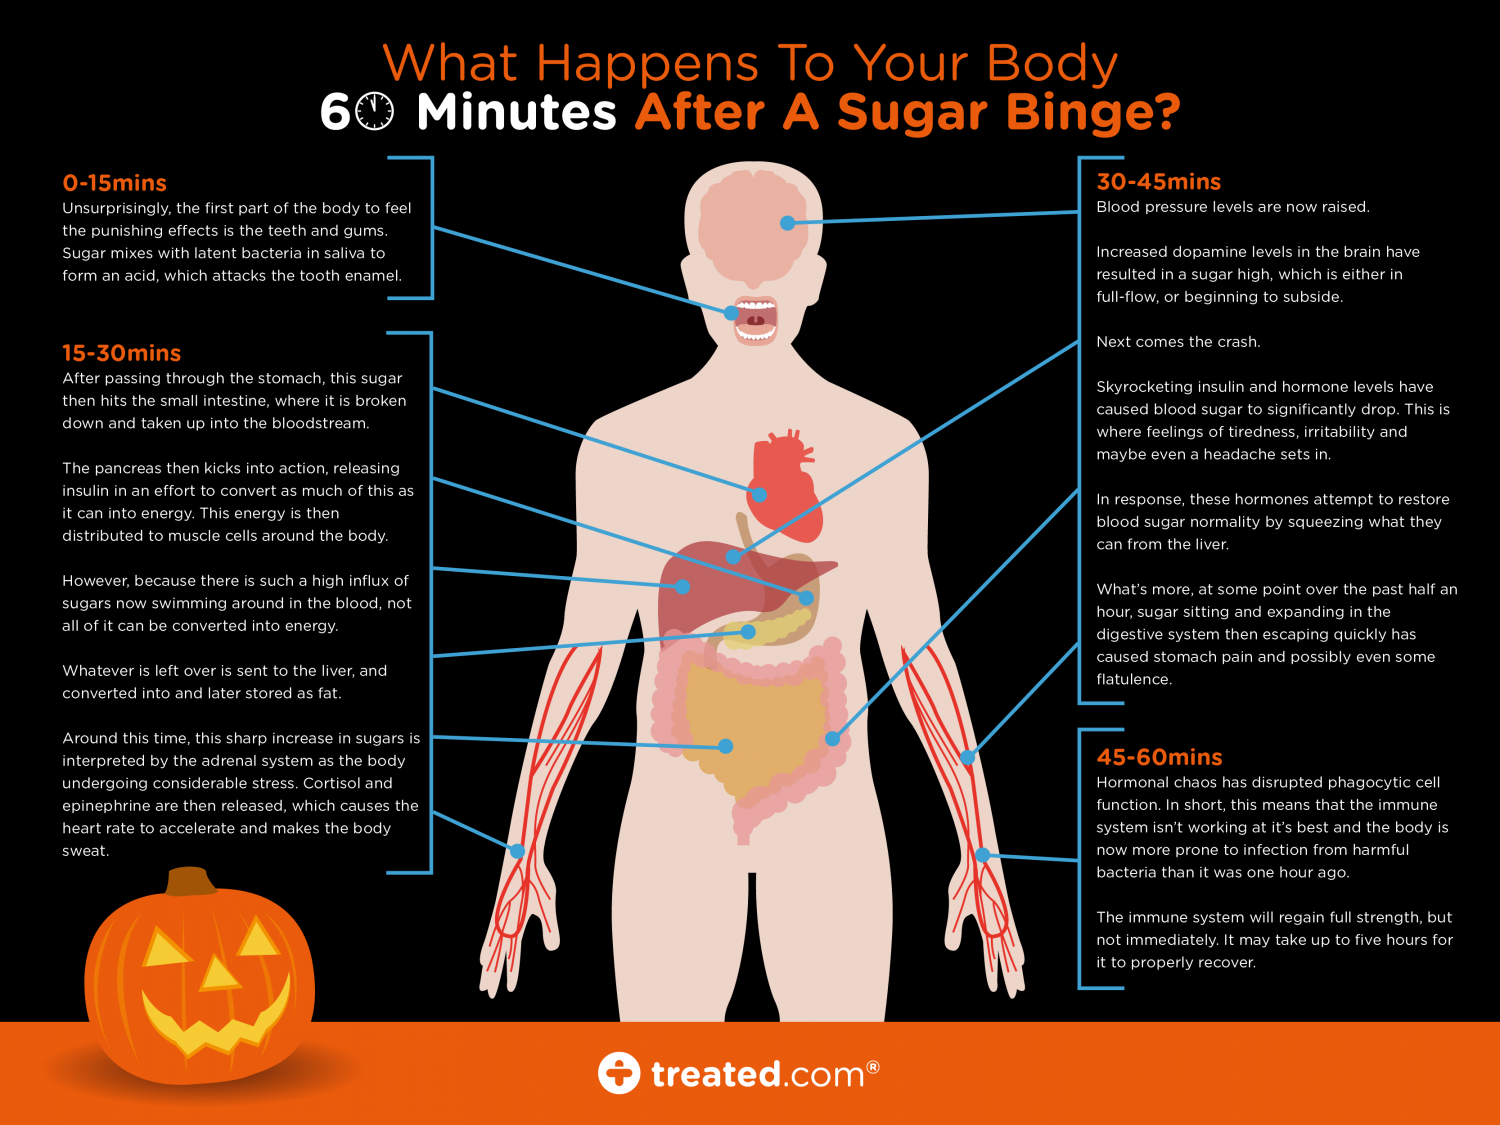 What Happens in the Body 60 Minutes After a Sugar Binge (Body Variant) Infographic